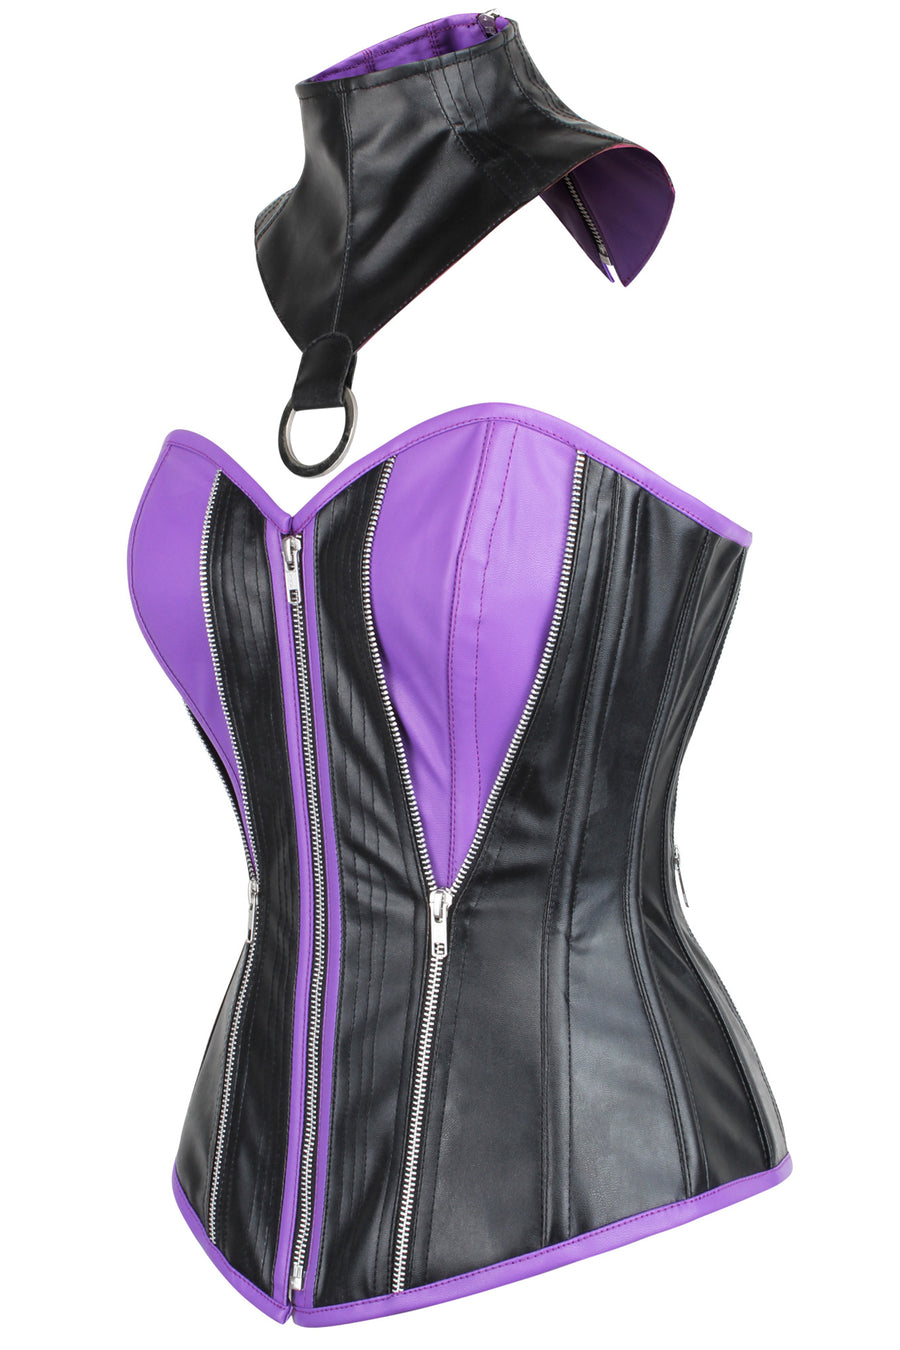 PVX Purple & Black Zipped Corset with Choker